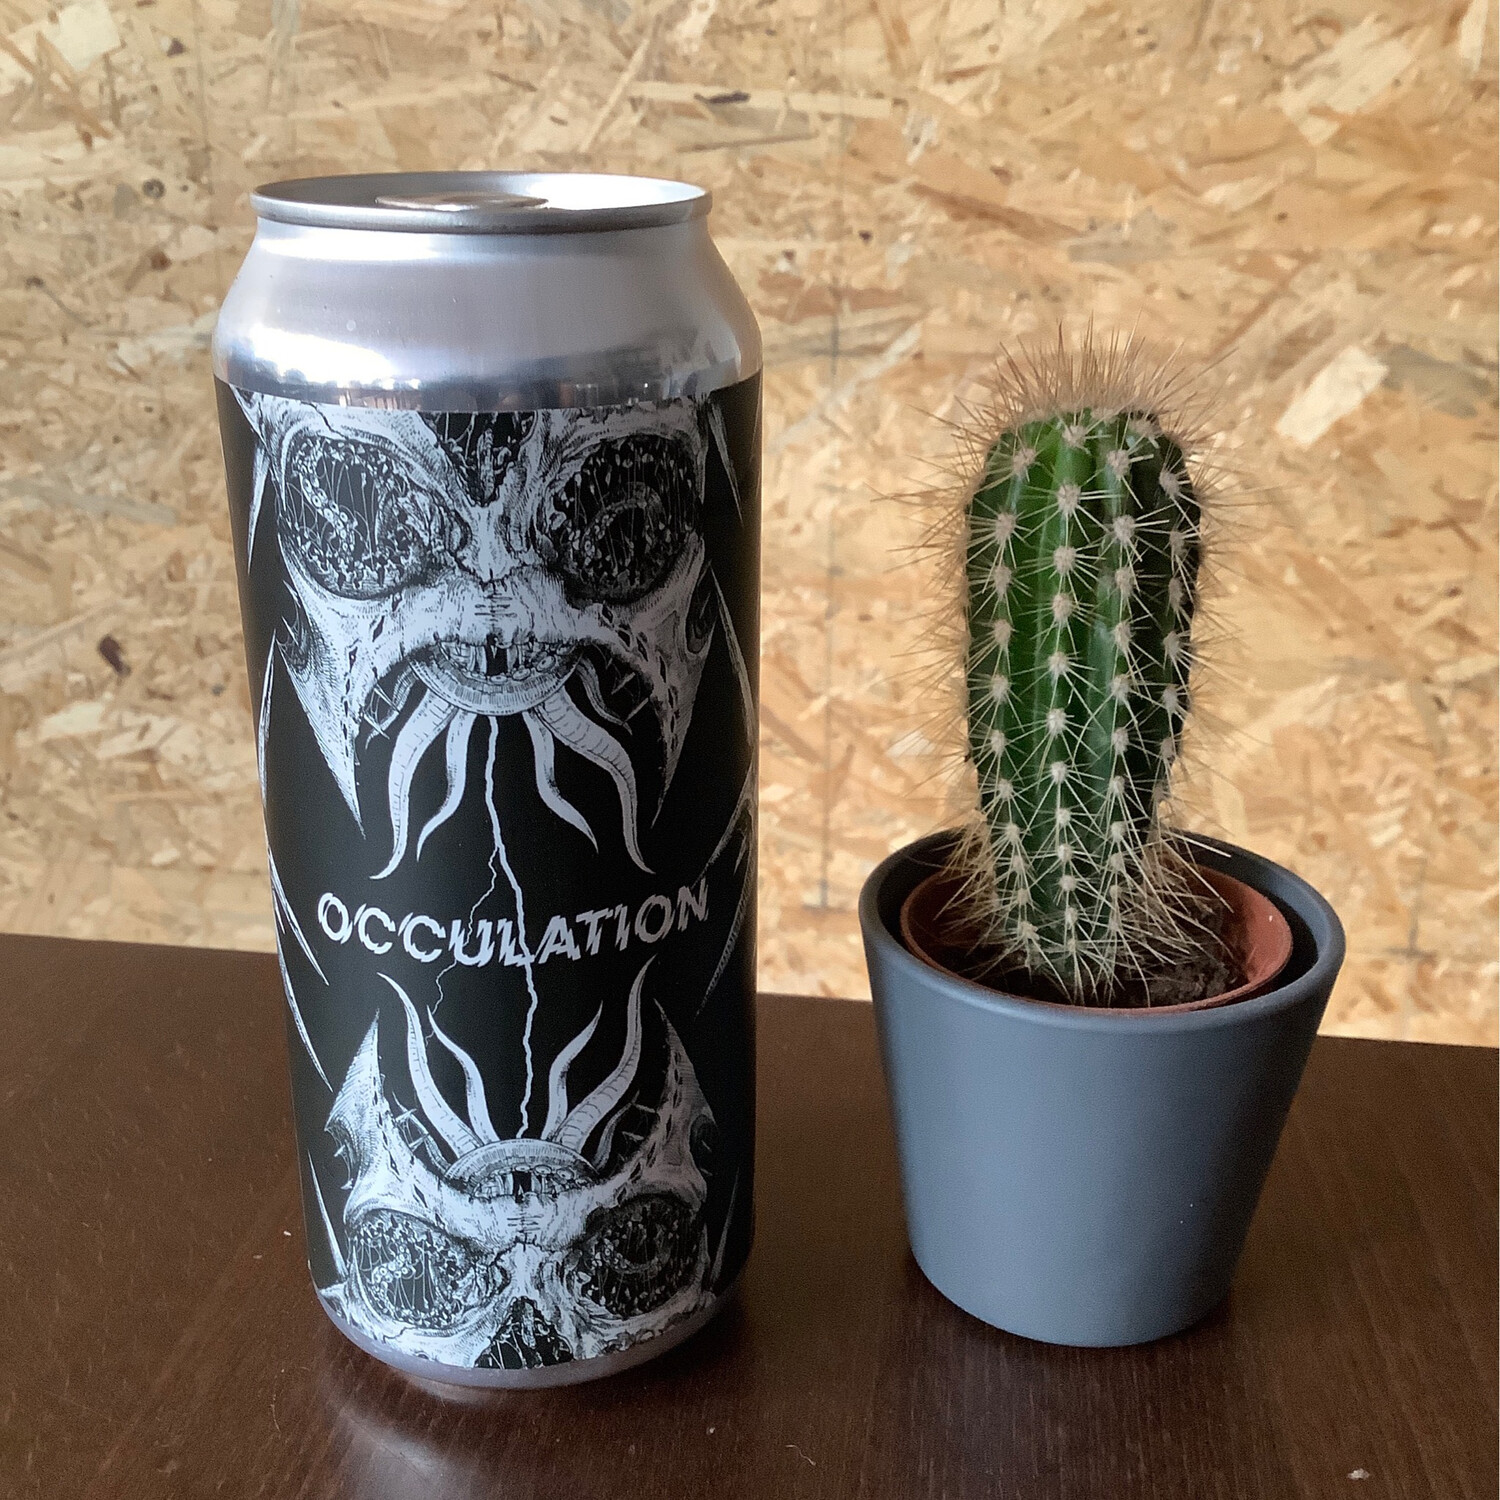 Adroite Theory - Occulation (Ghost 921) -7% - 47cl